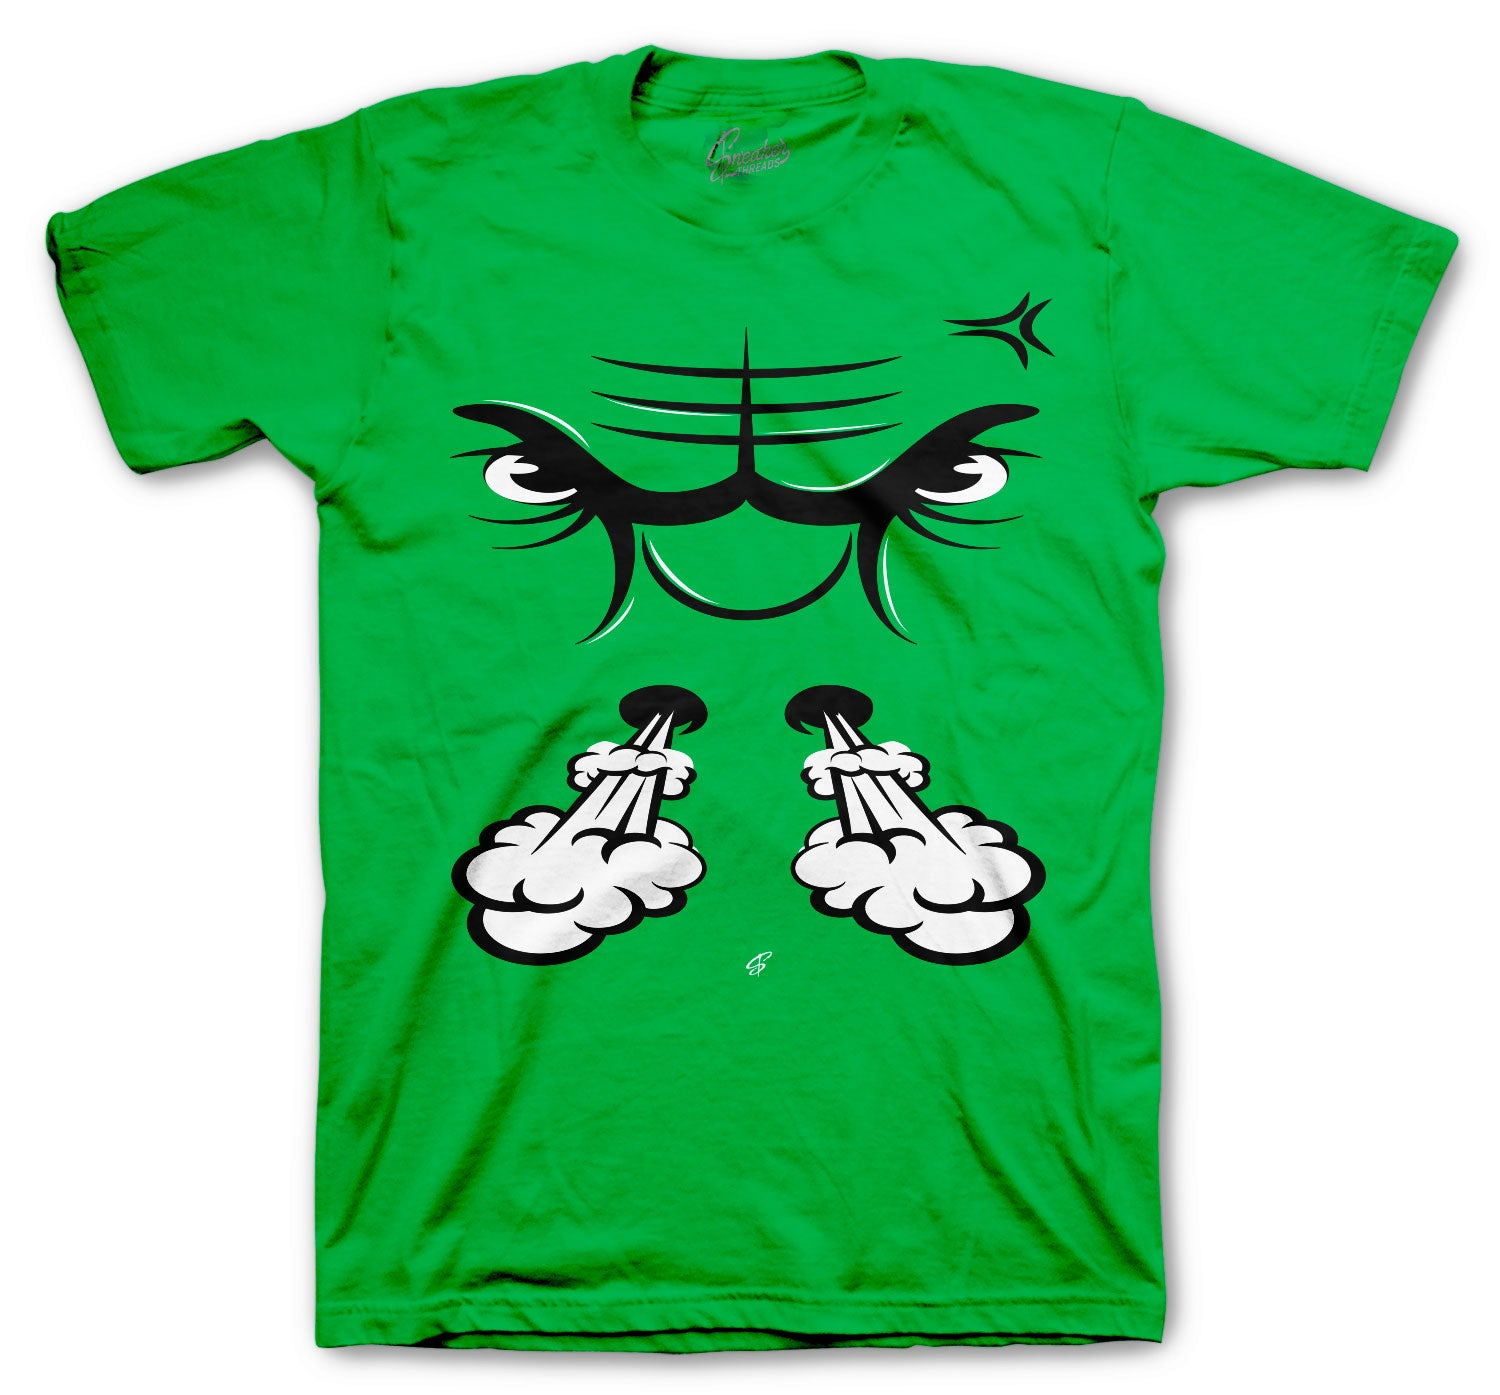 Jordan 13 Lucky Green Shirt - Raging Face - Green